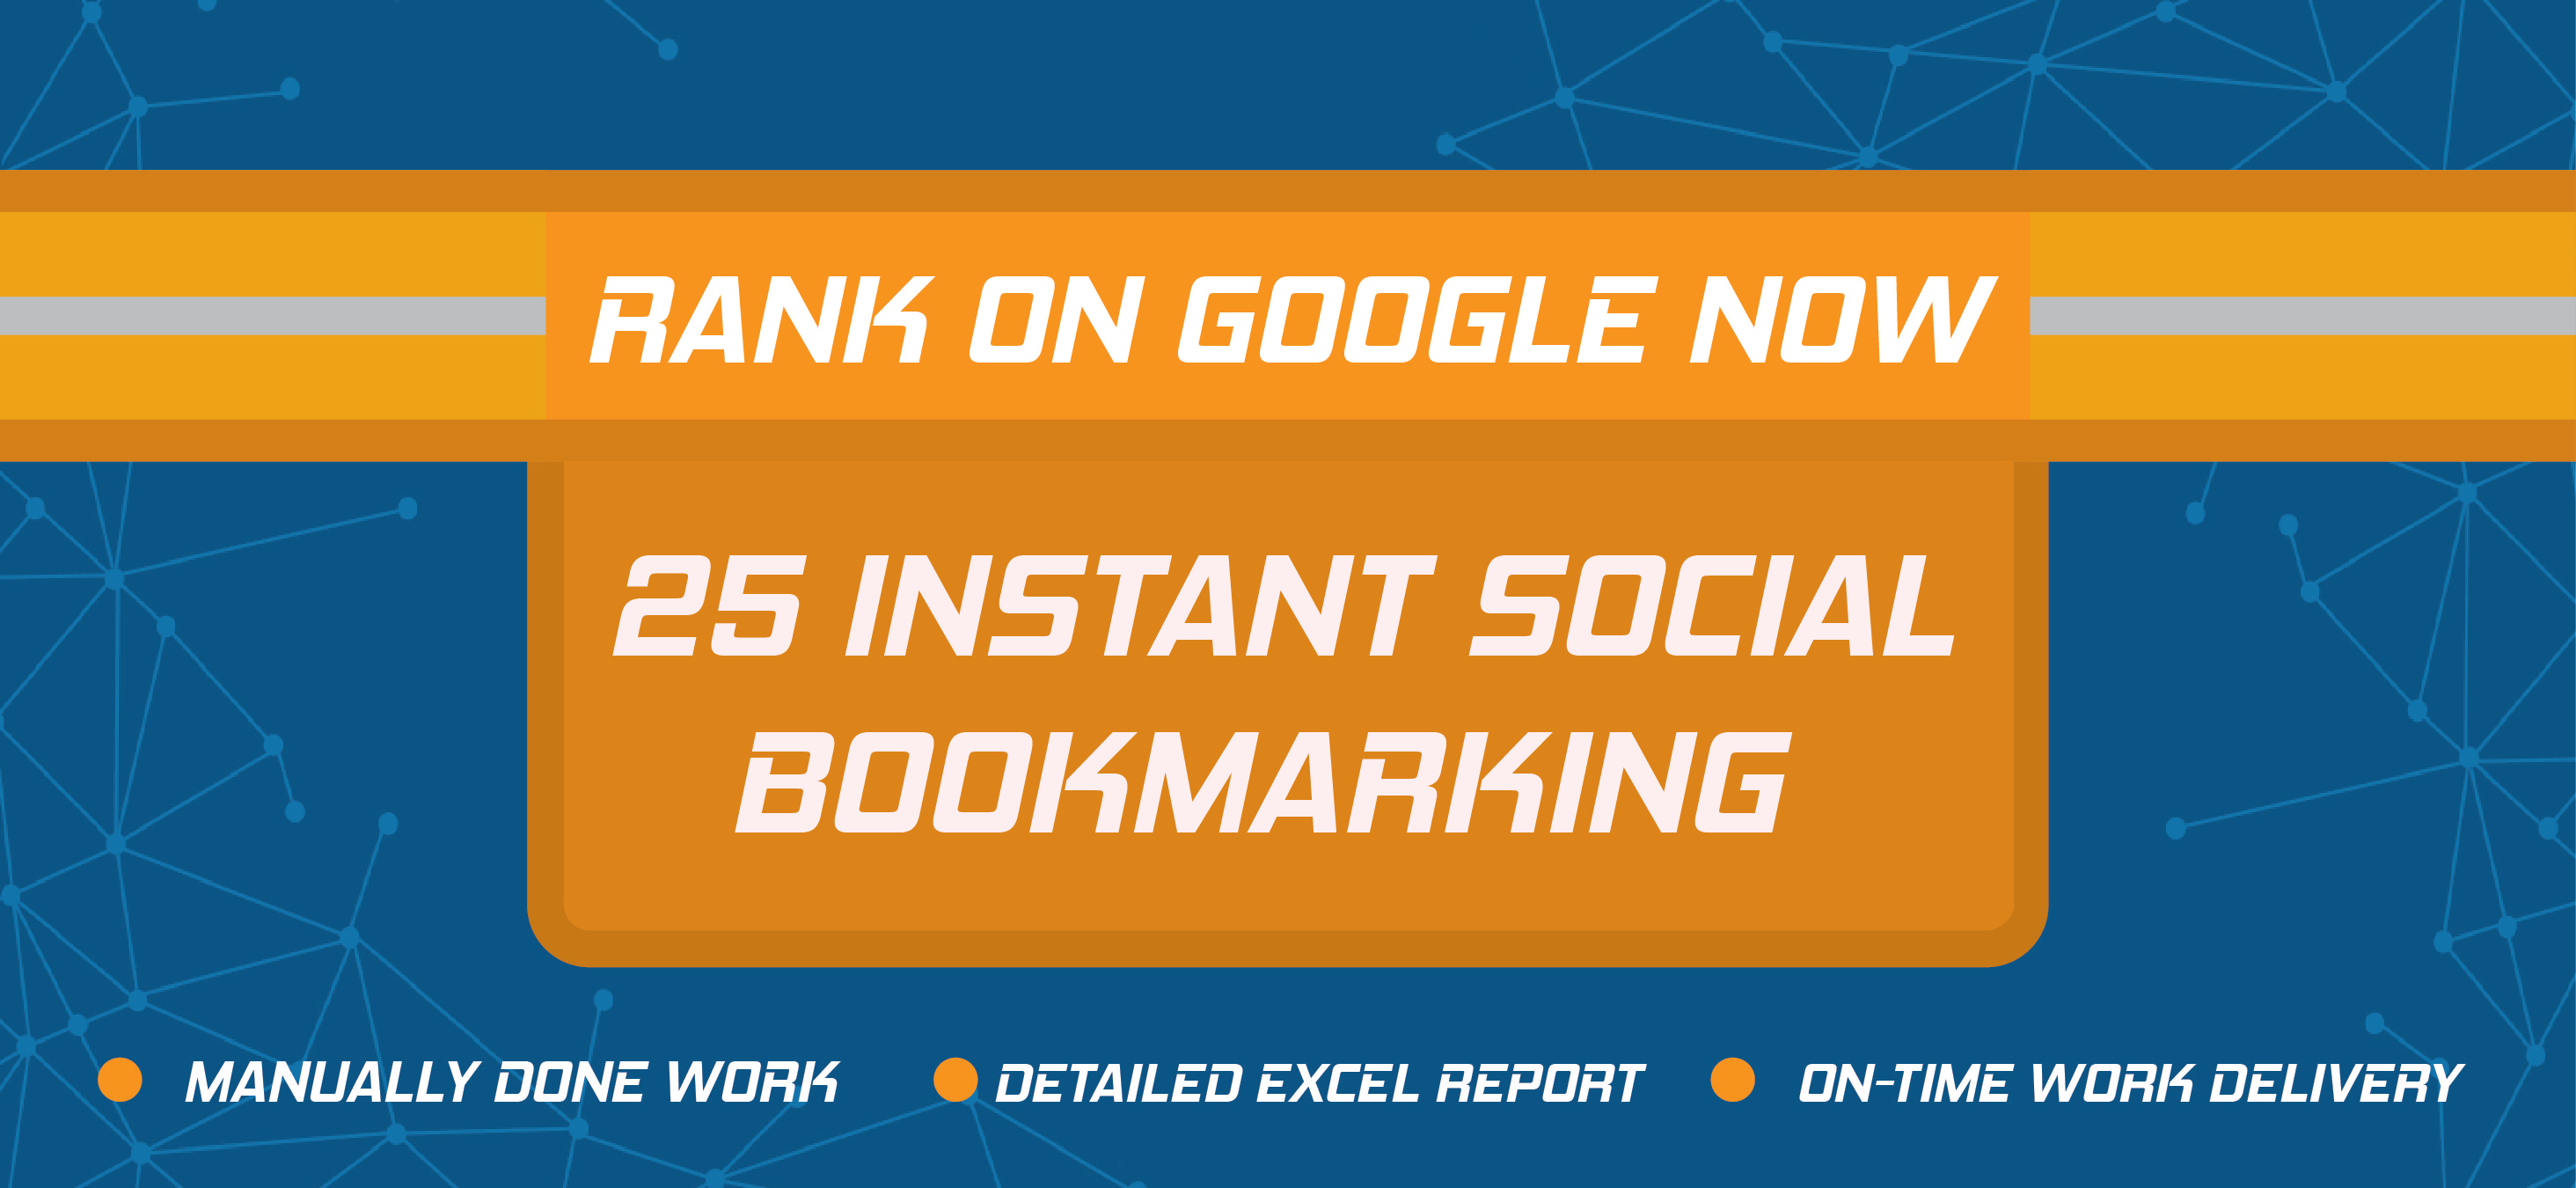 Create 25 Social Bookmarking for your website